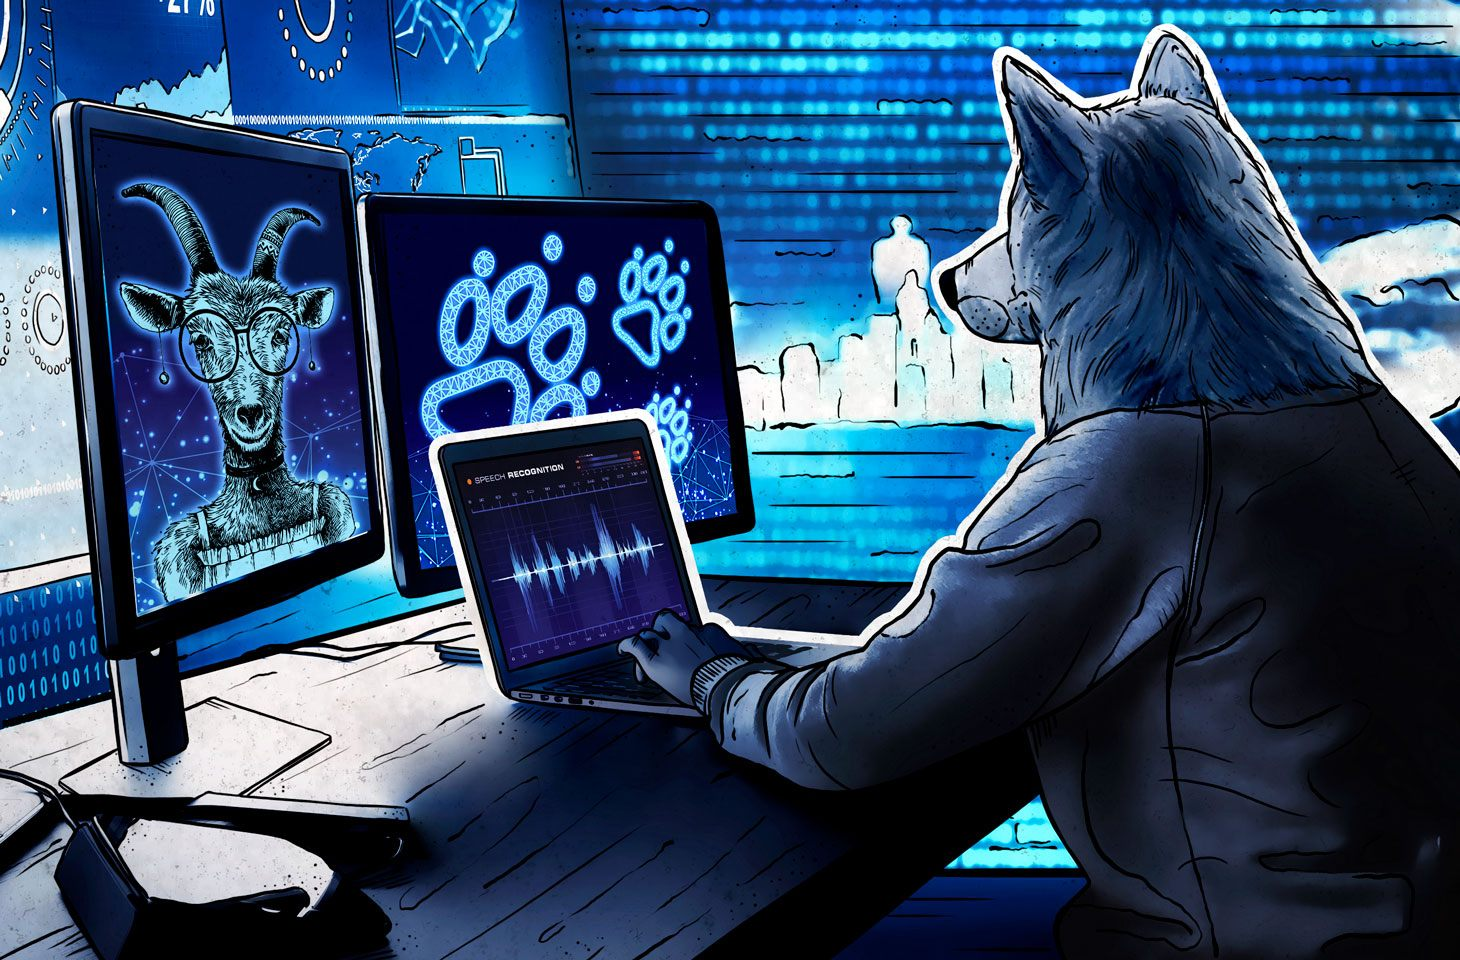 We analyze the fairy tale The Wolf and the Seven Young Goats in terms of cybersecurity